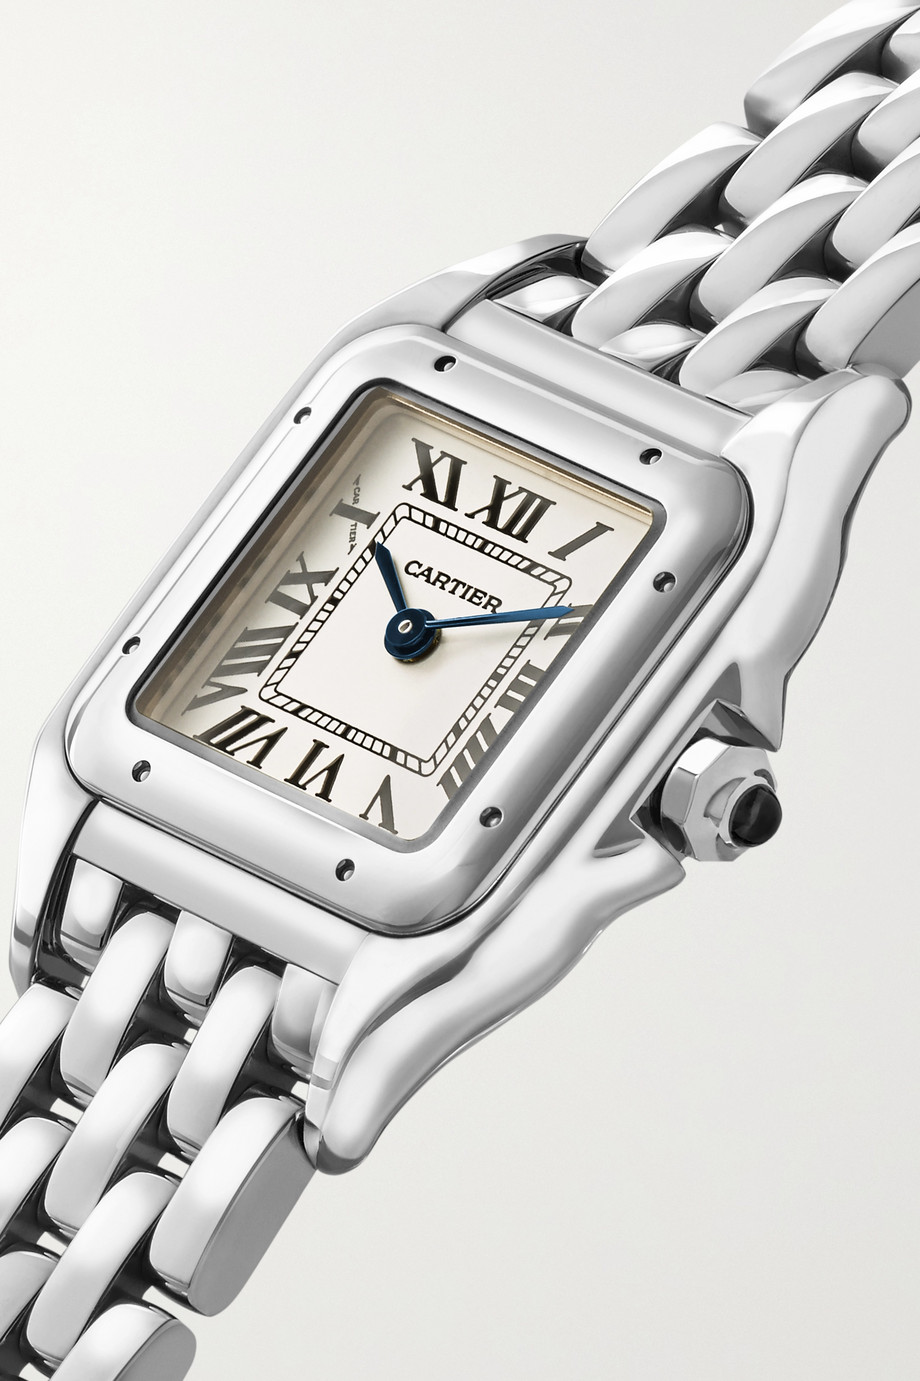 Cartier Panthère de Cartier 22mm small stainless steel watch